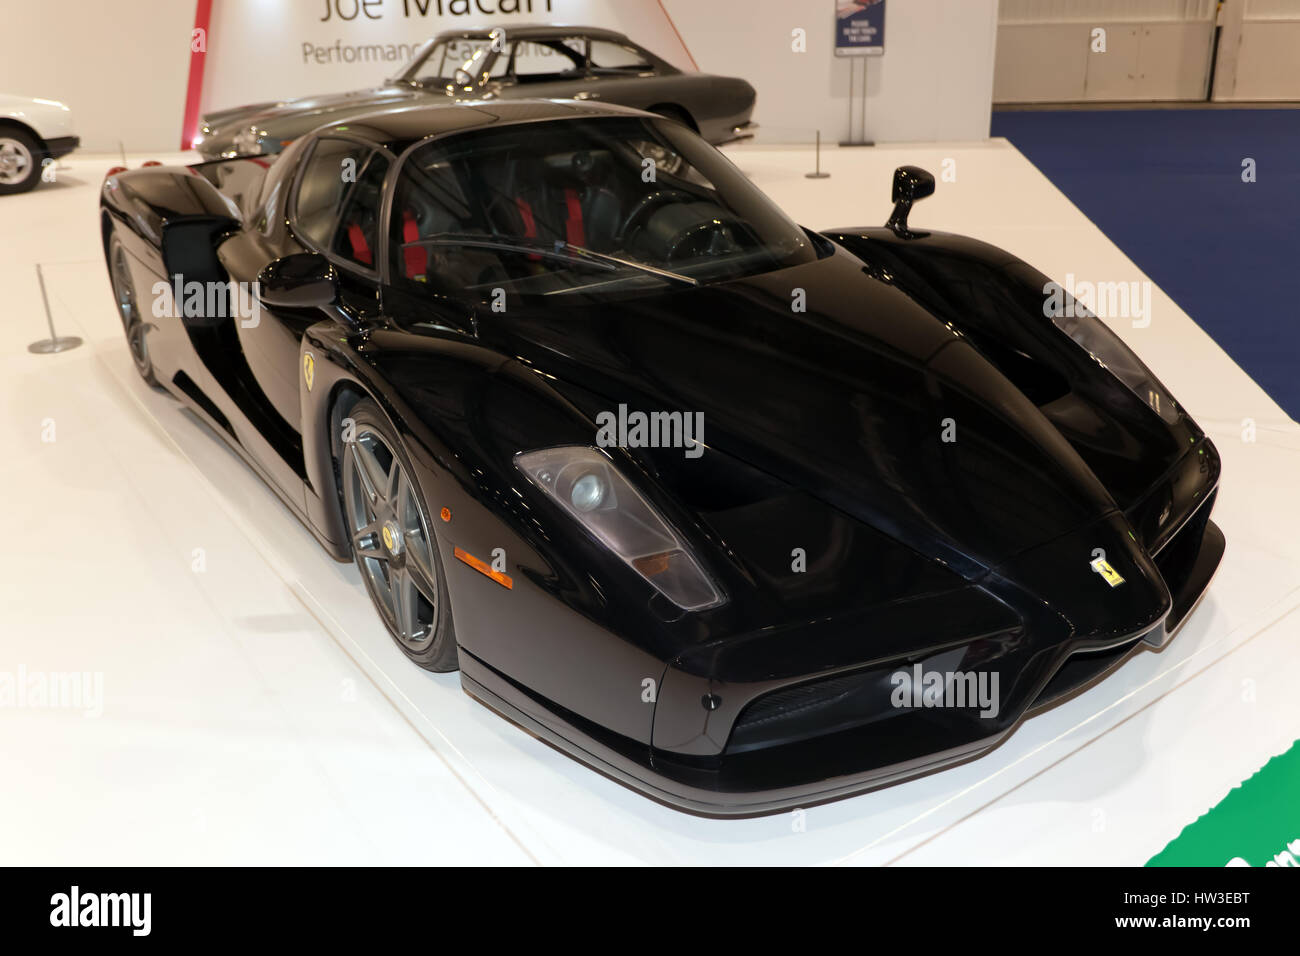 View of a black Enzo Ferrari, part of the Ferrari Tribute Collection, at the 2017 London Classic Car Show. - Stock Image